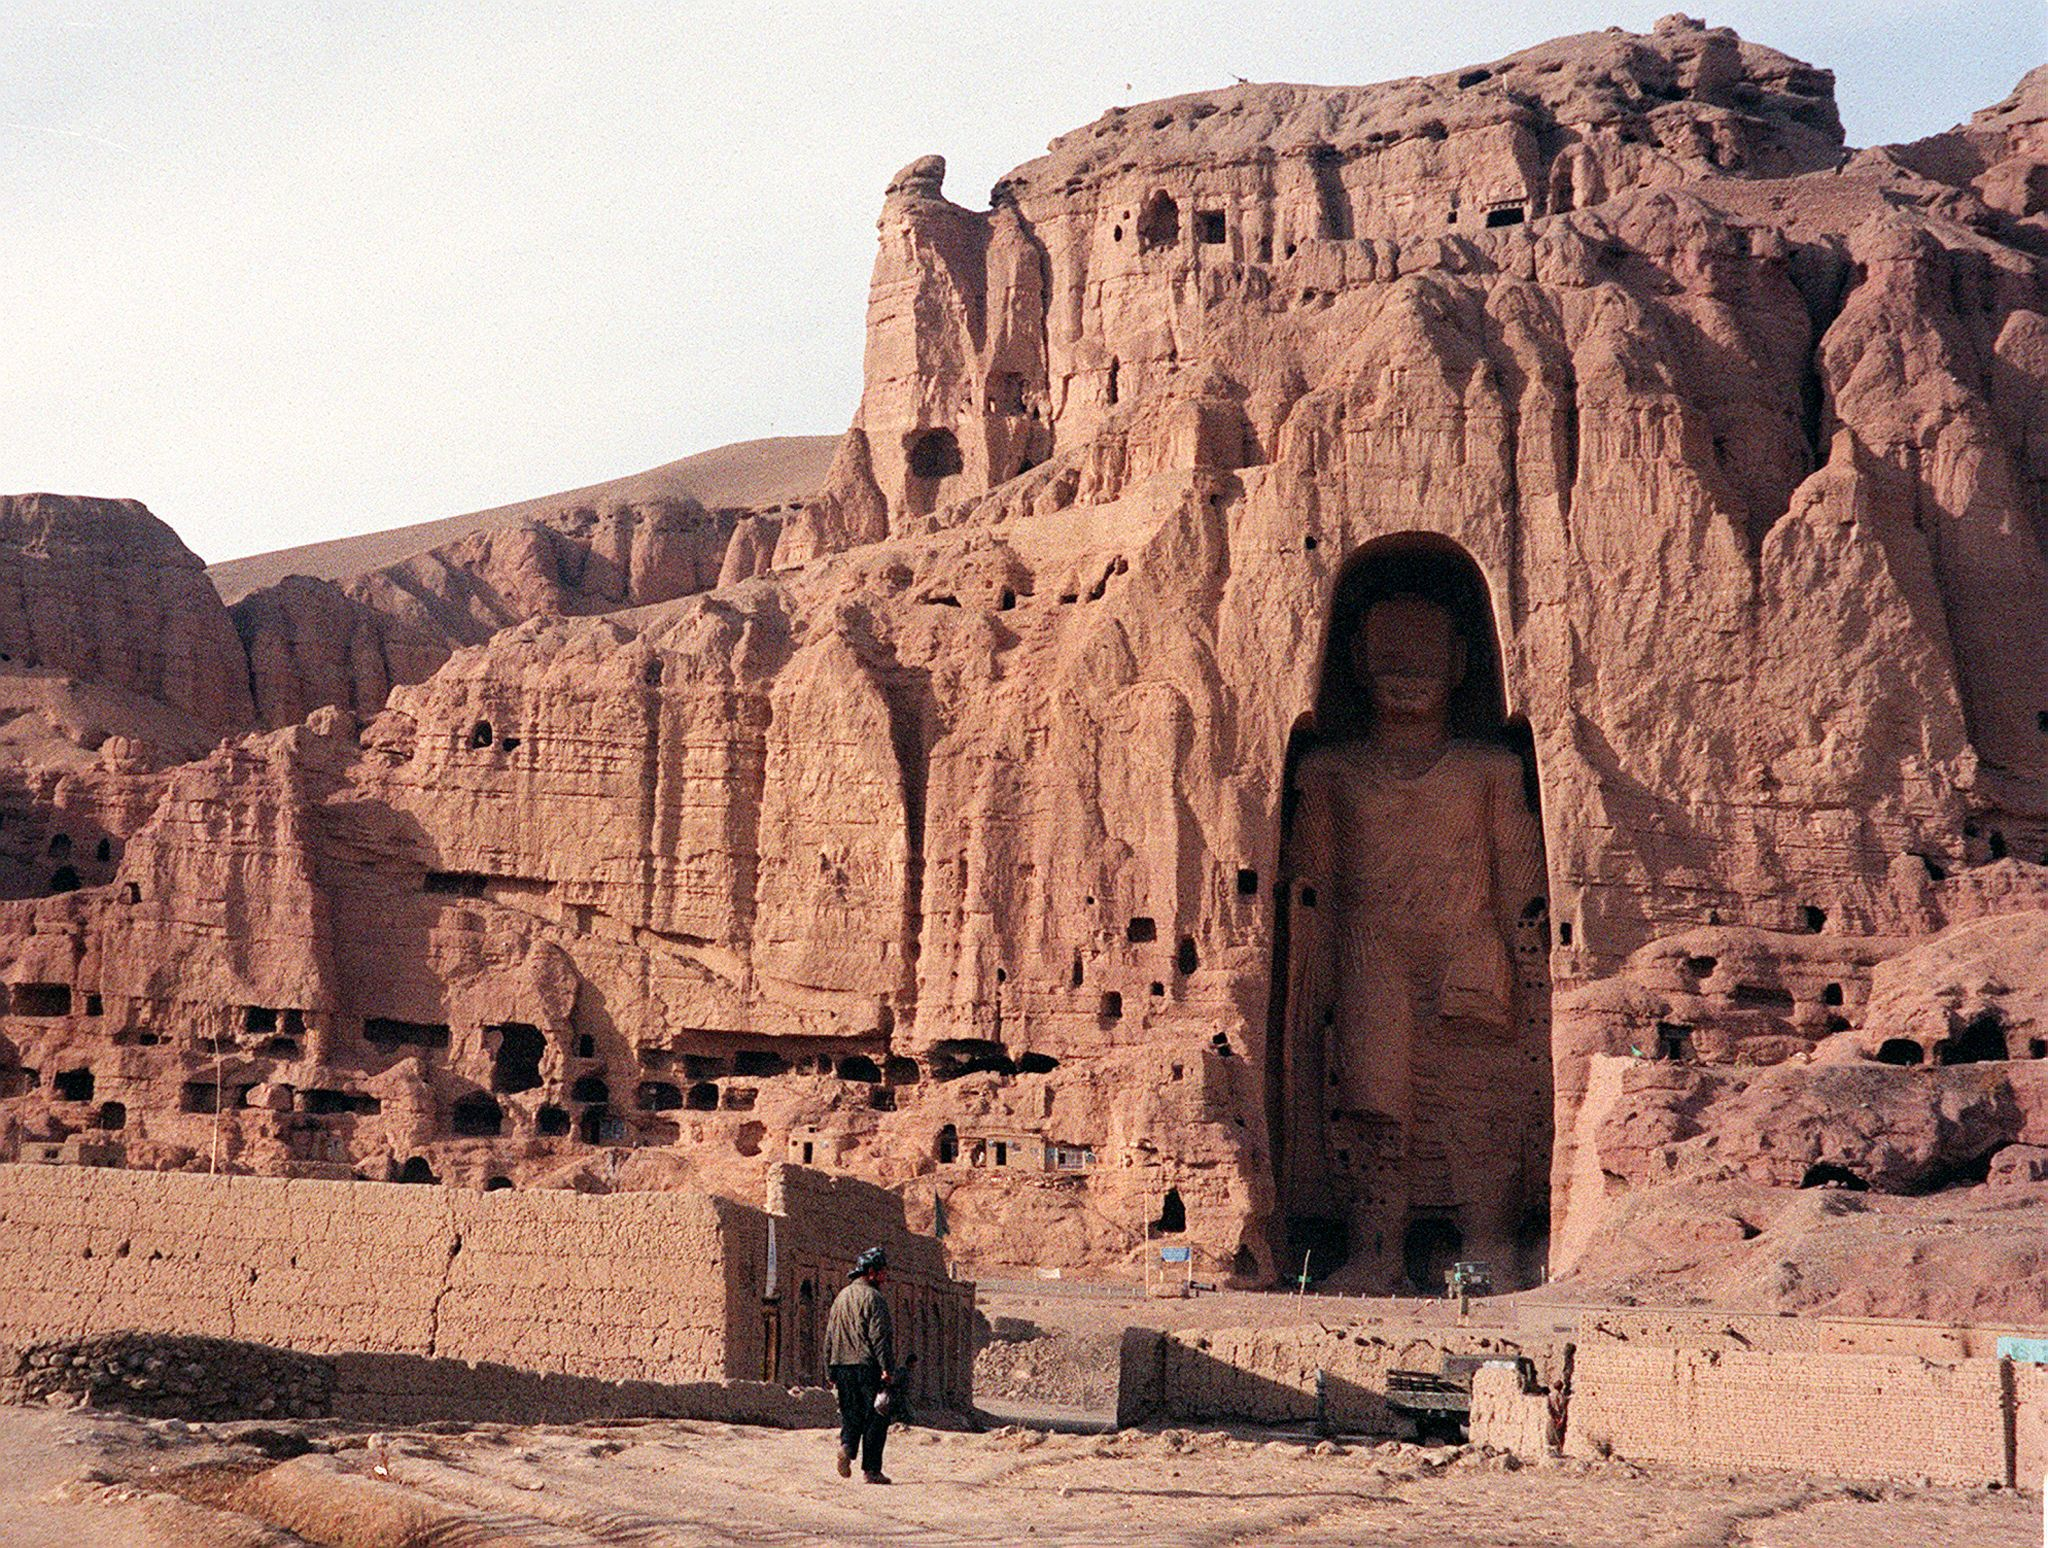 (FILES) A file photo dated 07 December 1997 shows an Afghan walking near the world's tallest standing statue of Buddha in Bamiyan province of Afghanistan. In a report in Hong Kong, 16 May 2002, a Taiwan-based Buddhist leader will donate one million Hong Kong dollars (129,000 USD) to help restore the giant Buddha statues destroyed by the Taliban. (FILM) AFP PHOTO/ Jean-Claude CHAPON (Photo by JEAN-CLAUDE CHAPON / AFP) (Photo by JEAN-CLAUDE CHAPON/AFP via Getty Images)